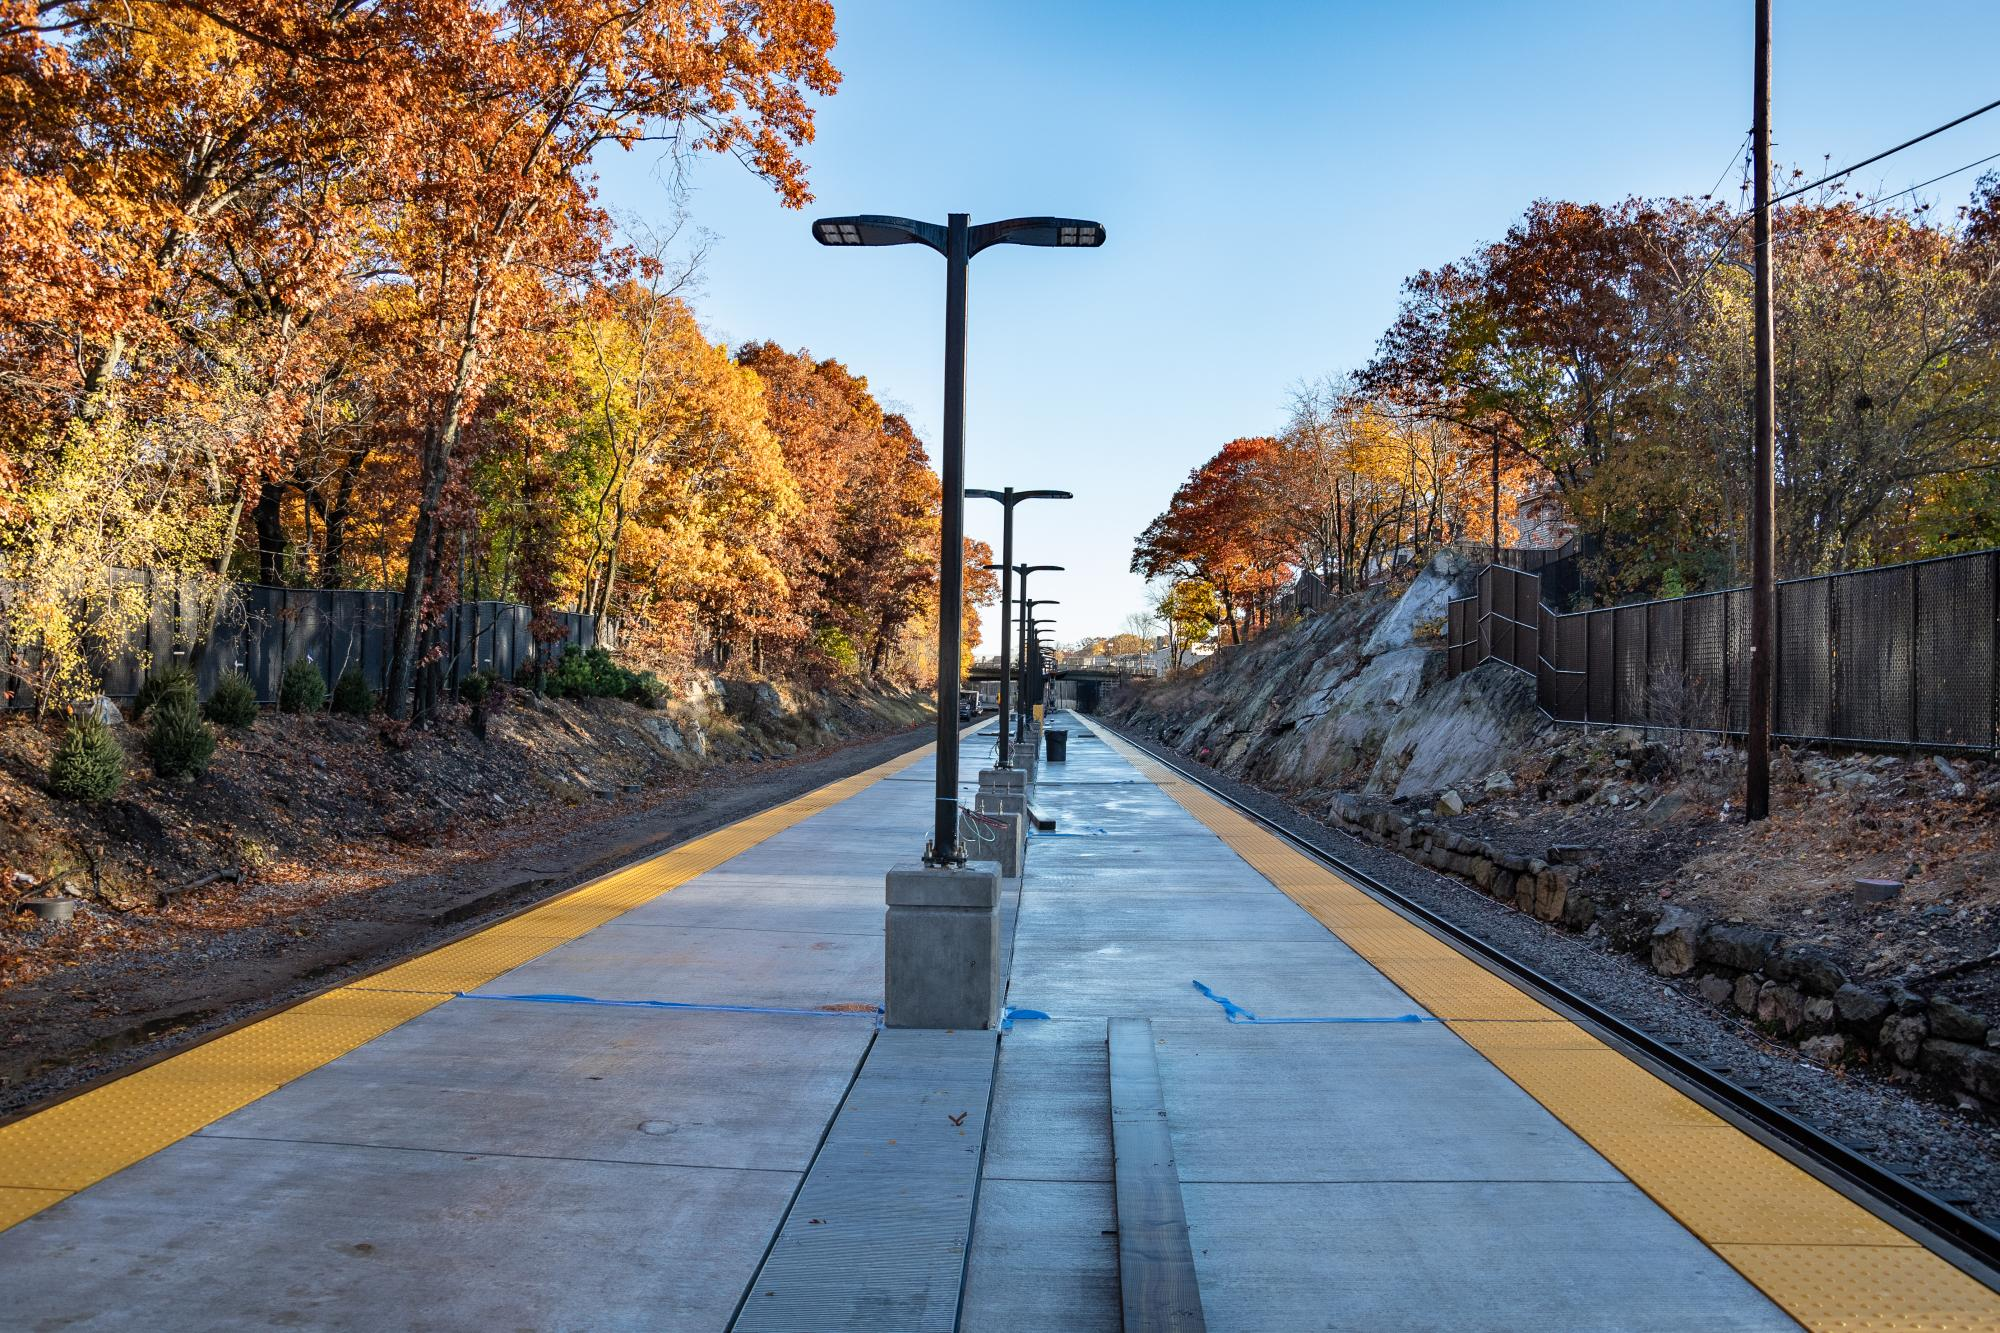 Blue Hill Ave station platform (November 2018)